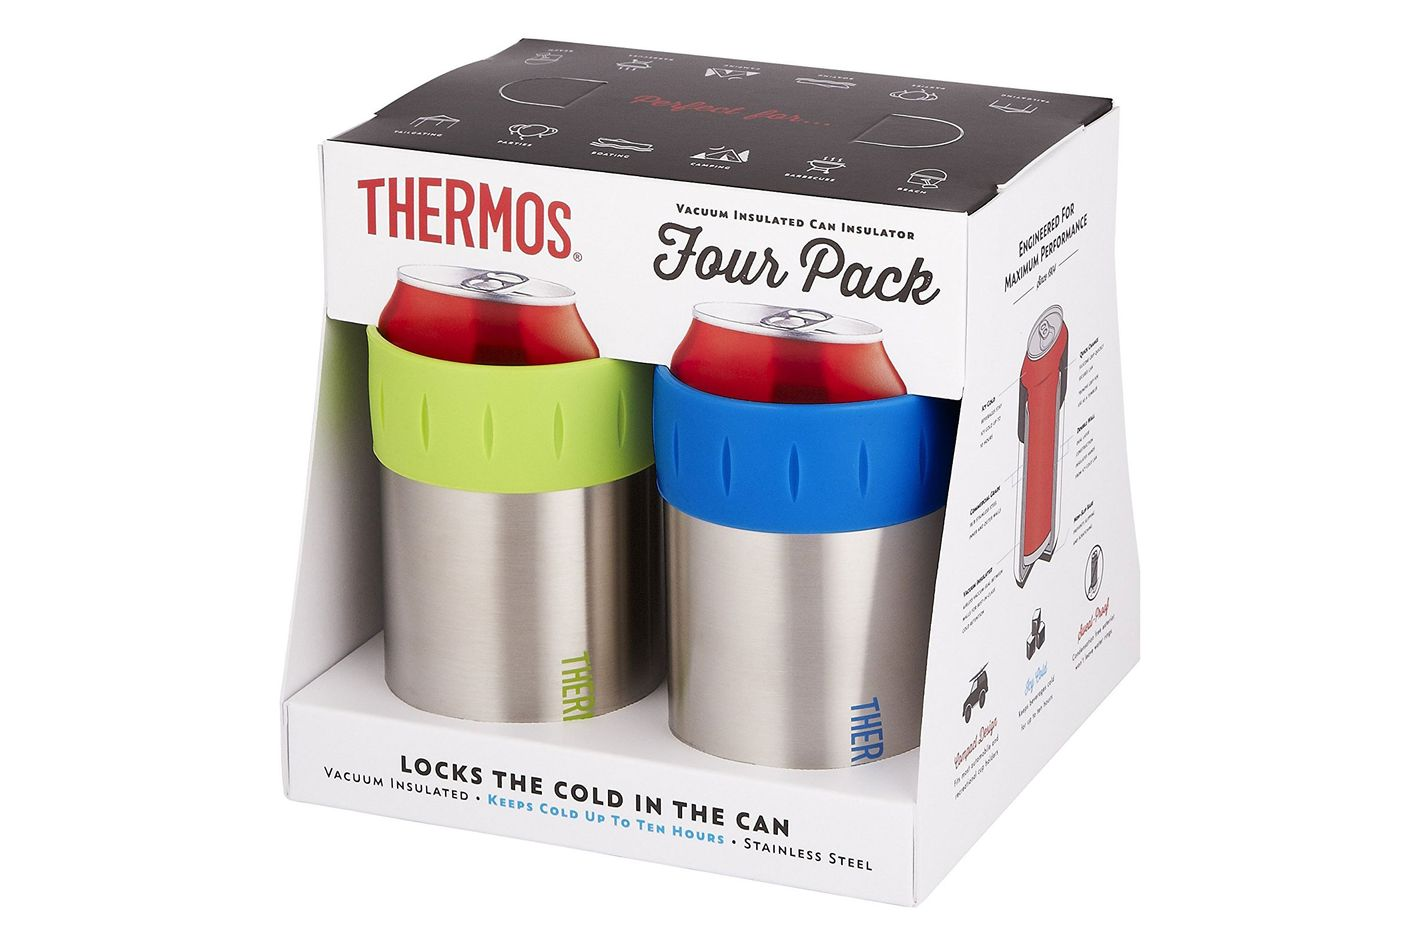 Thermos Stainless Vacuum Insulated 12-Ounce Can Insulator (Set of 4)